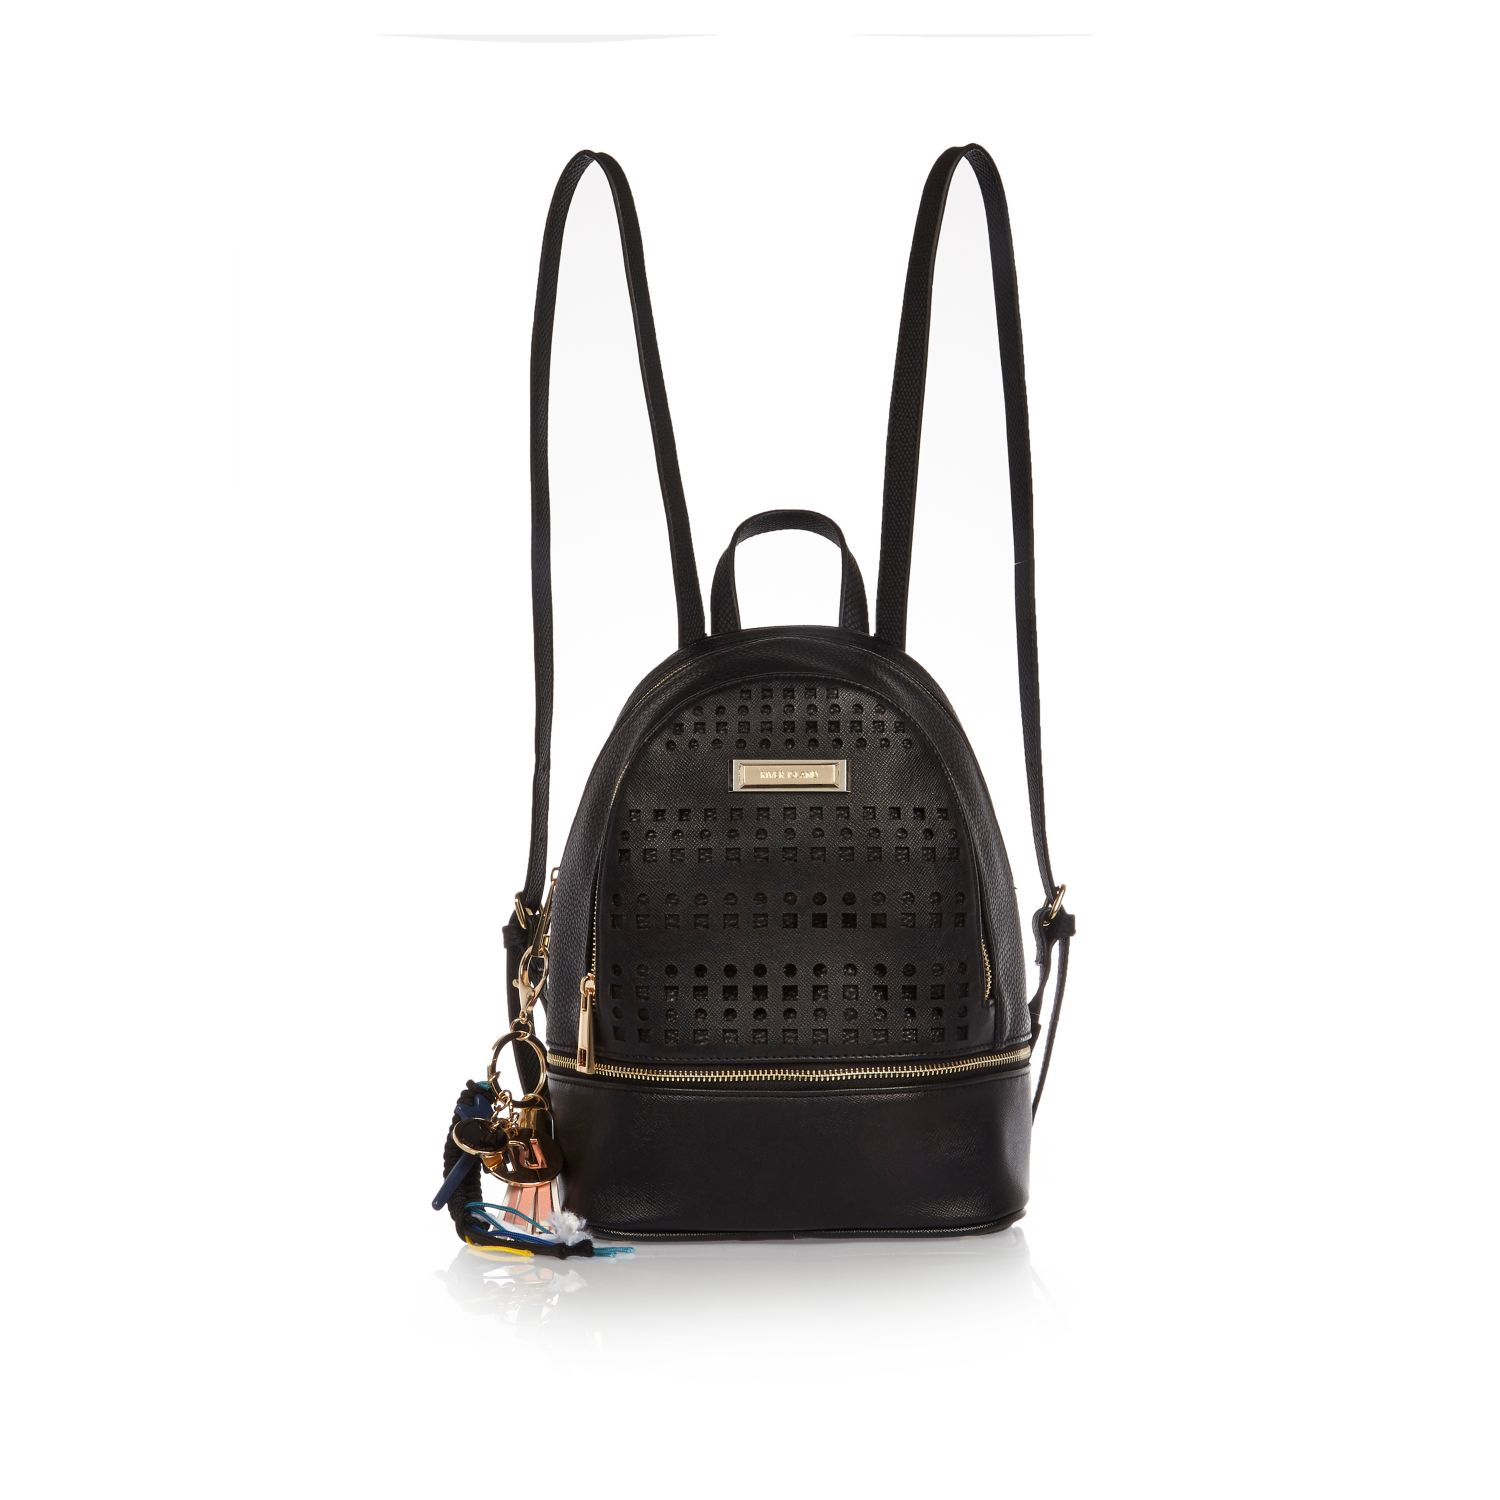 59c7e96412 Lyst - River Island Laser-Cut Faux-Leather Backpack in Black